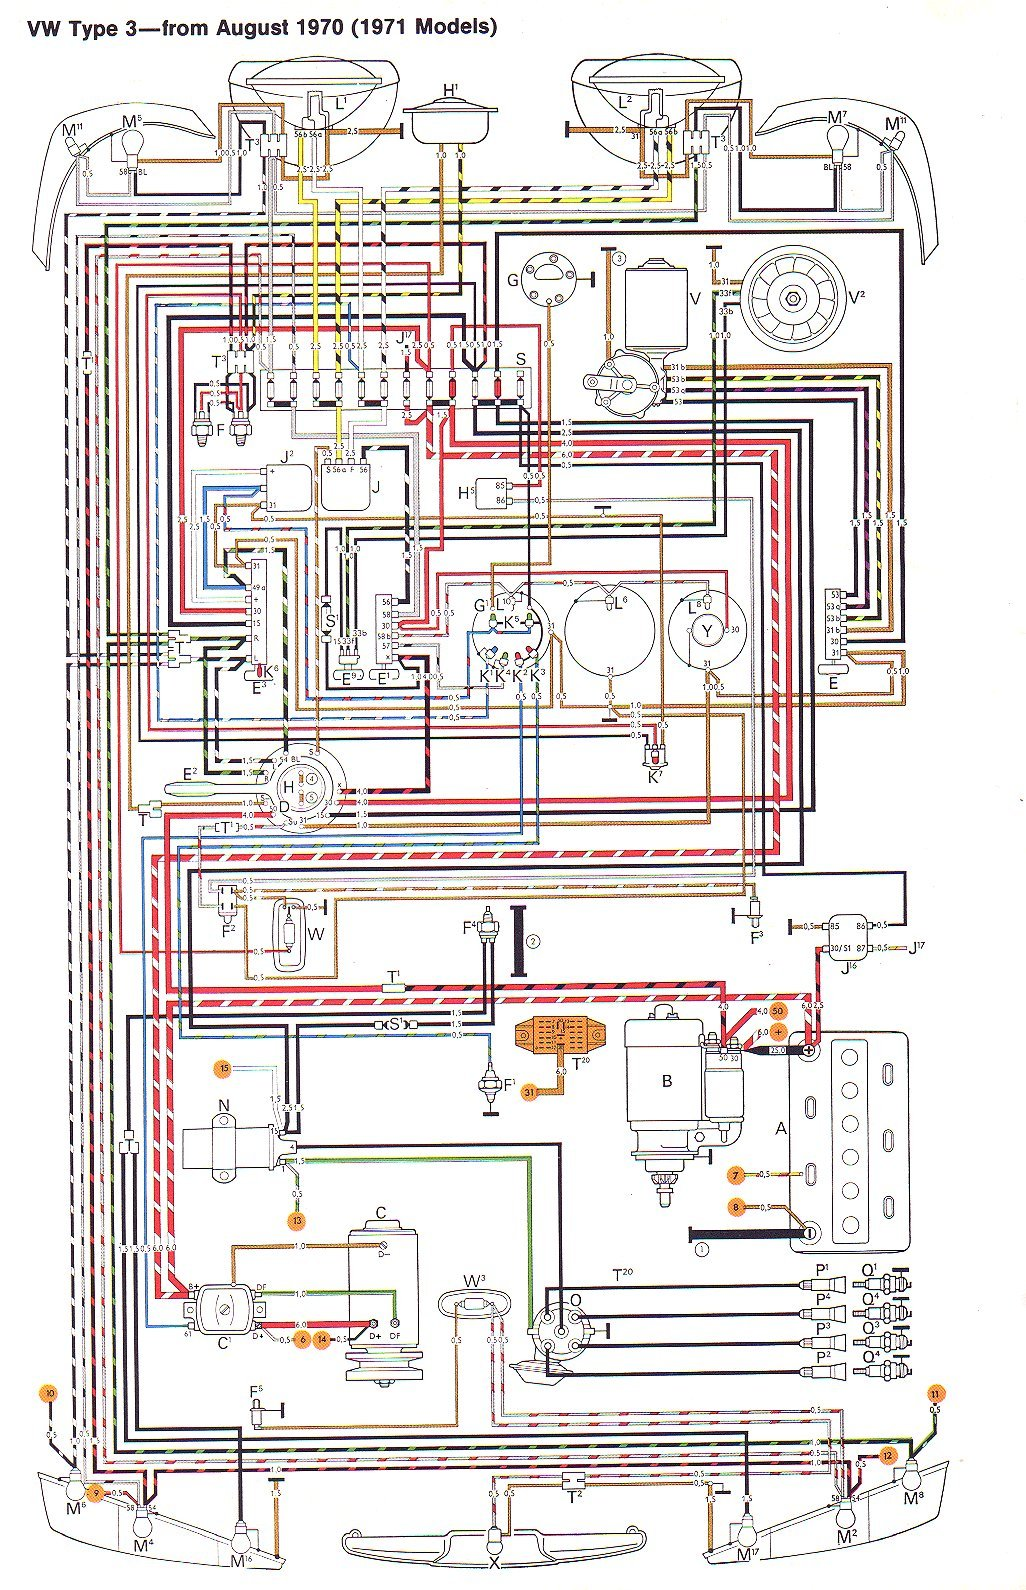 wire71t3 vw type 3 wiring diagrams  at bayanpartner.co